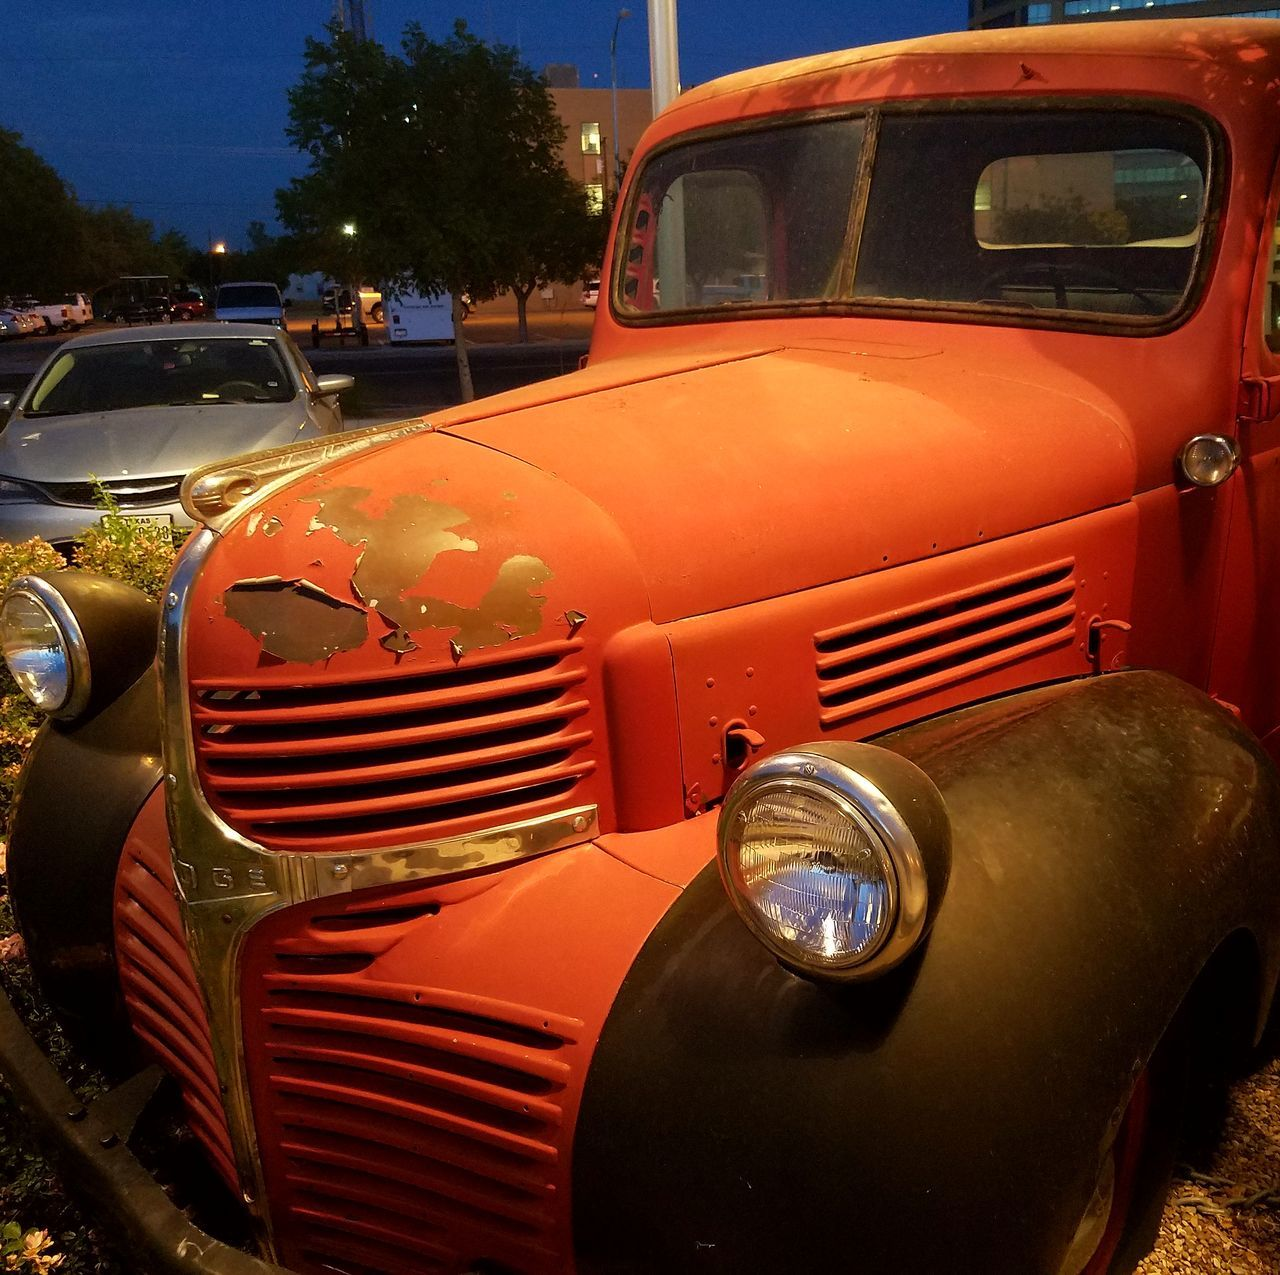 transportation, land vehicle, mode of transport, headlight, no people, outdoors, old-fashioned, day, stationary, red, close-up